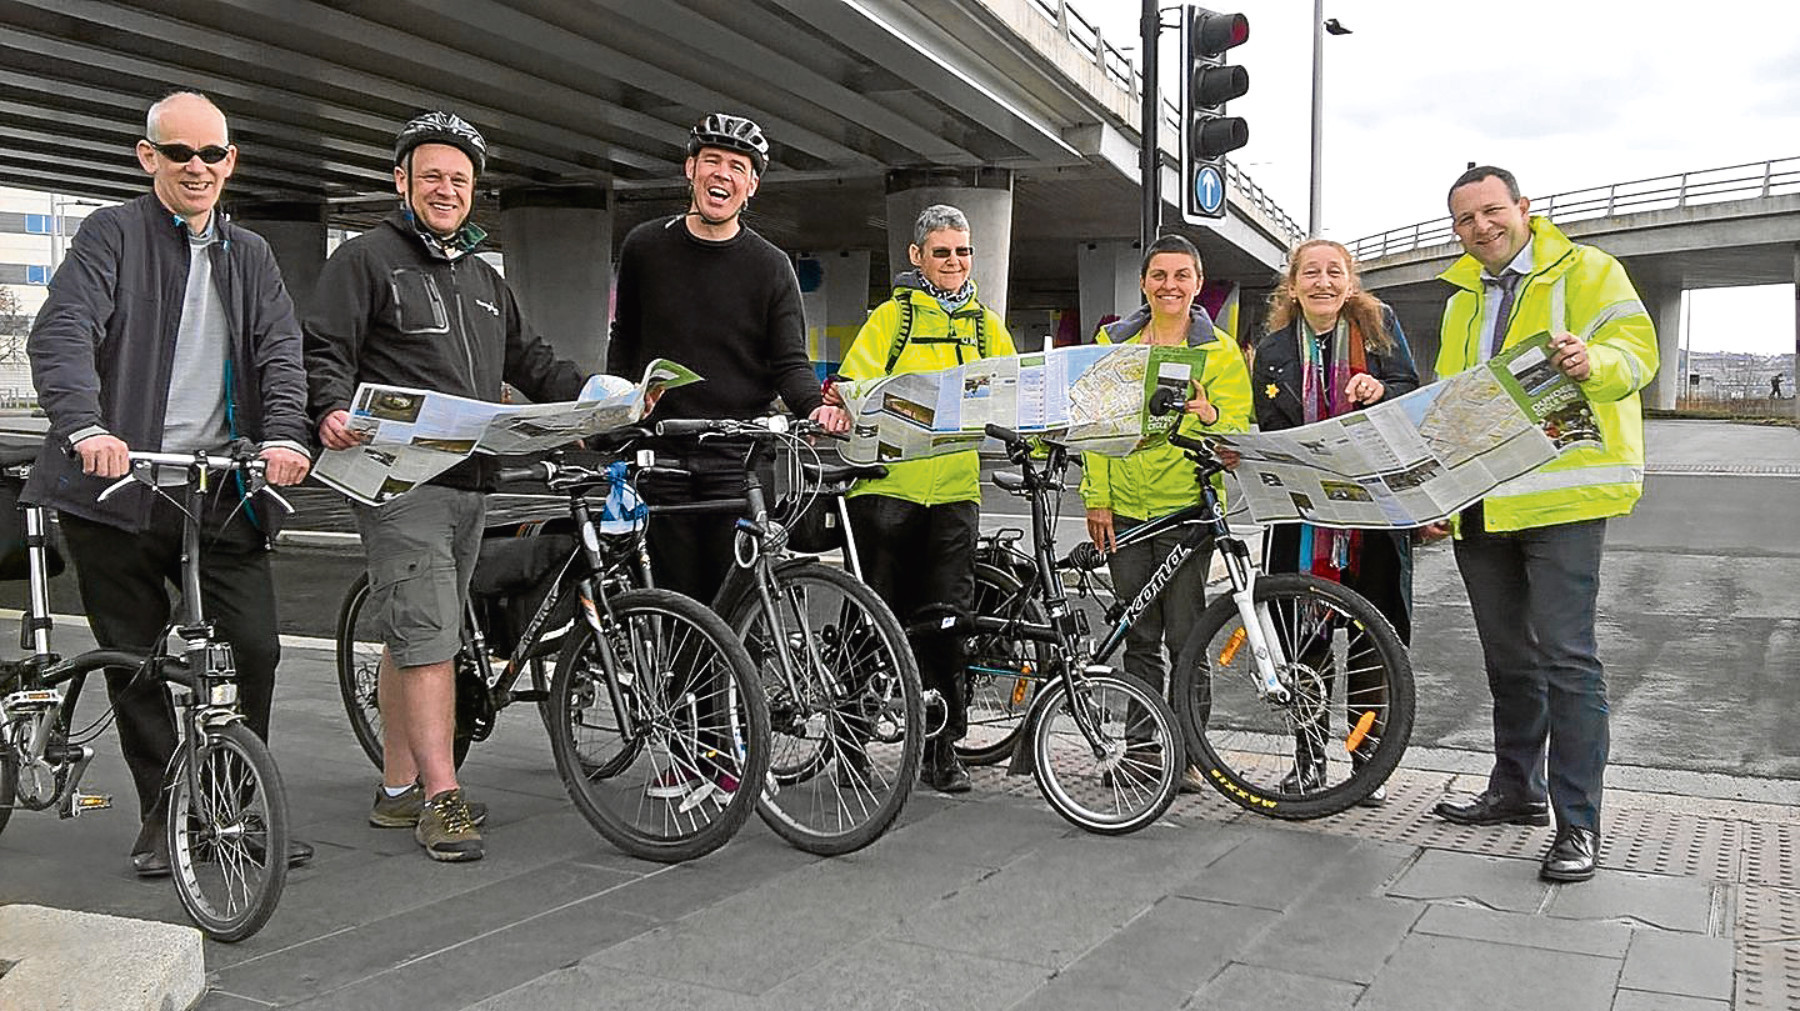 The launch of the new Dundee cycling map, which includes information on 20mph zones and suggestions for leisure rides throughout the city.